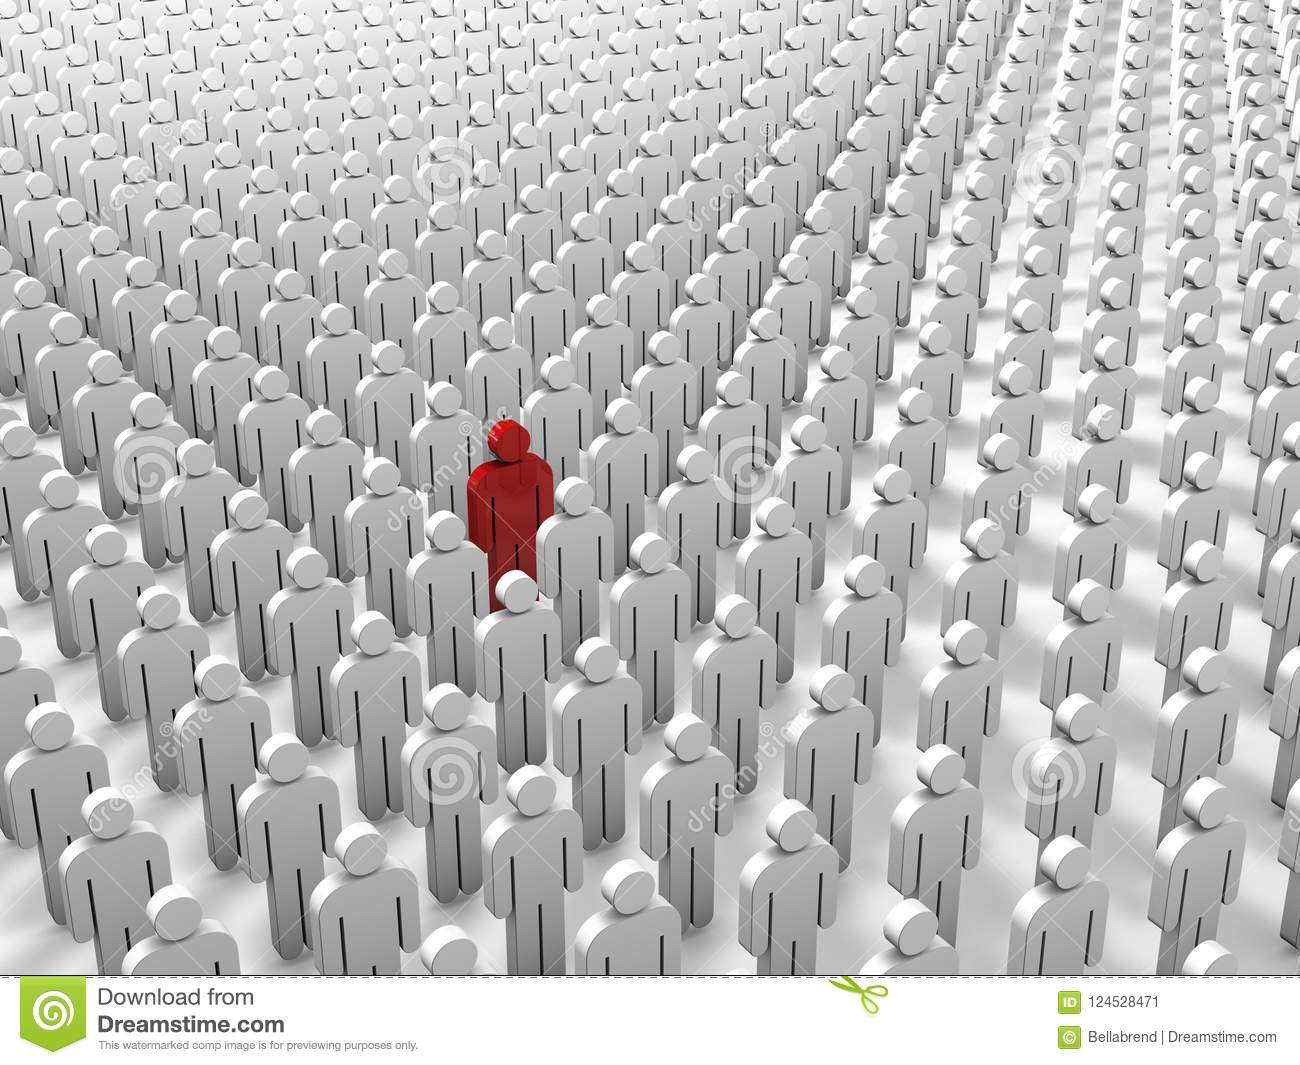 Abstract individuality, uniqueness and leadership business concept: single red 3D people figure in crowded group of white figures.